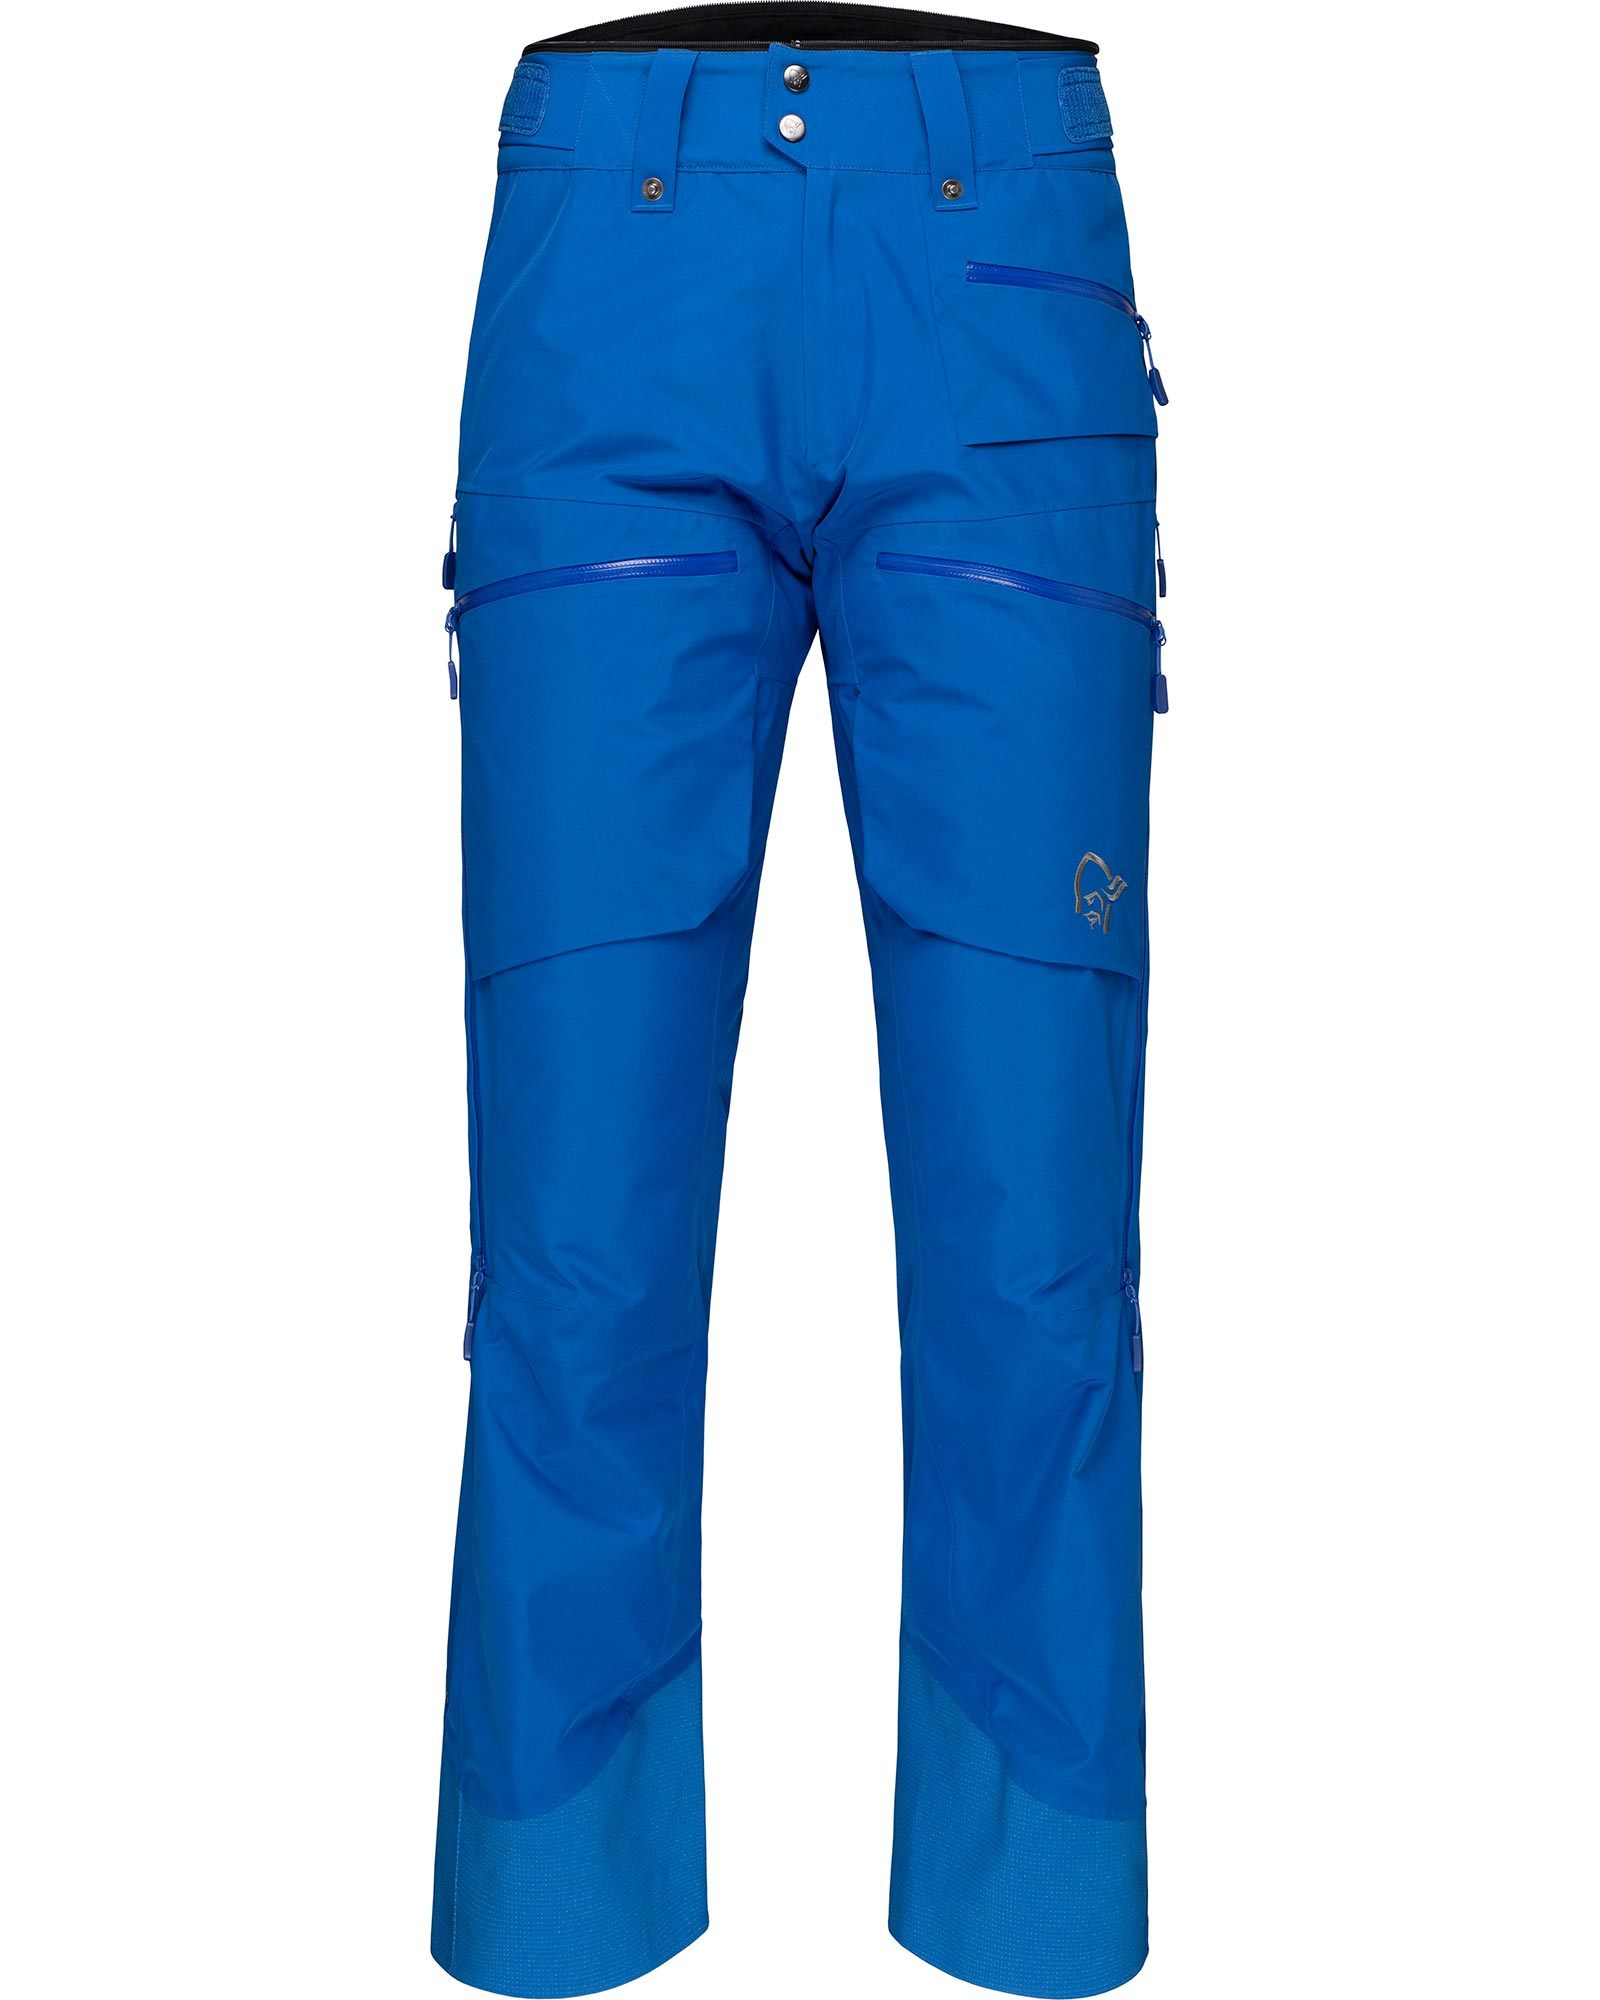 Norrona Men's Lofoten GORE-TEX Insulated Ski Pants 0